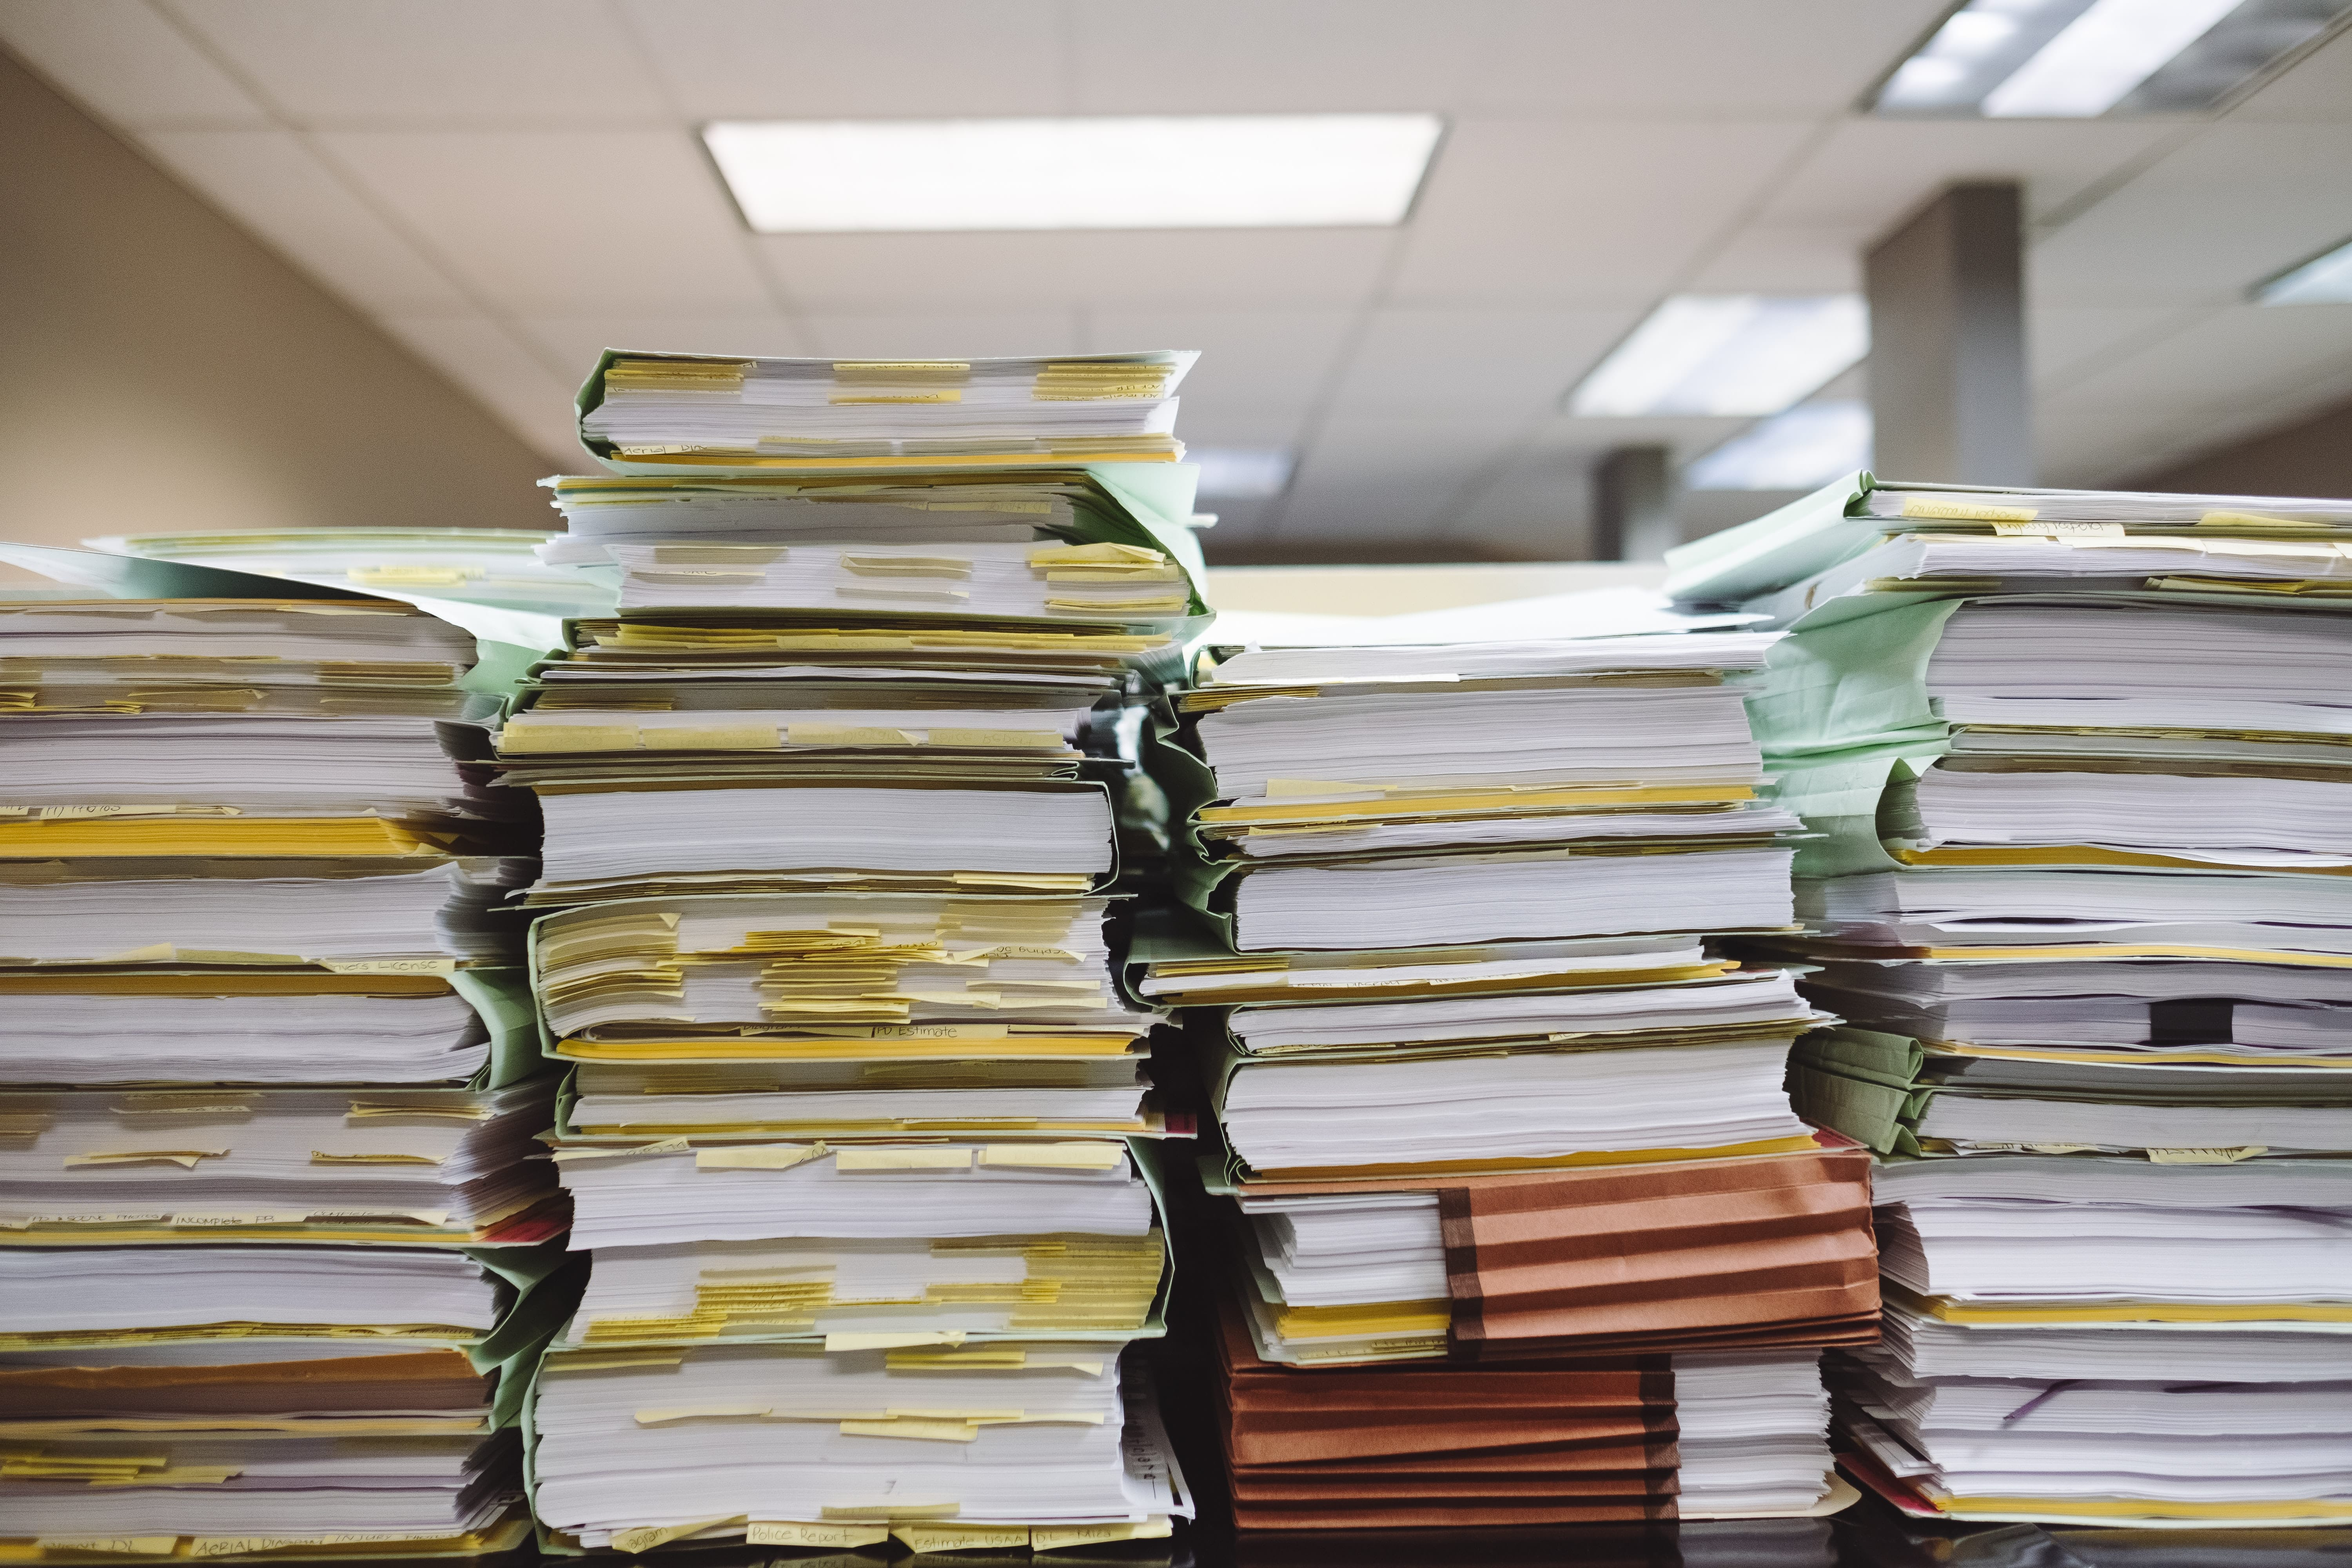 Four piles of papers are stacked on a table in a room with overhead fluorescent lighting. The papers are separated by accordion folders and paper binders.  Many pages have yellow post-its poking through them.